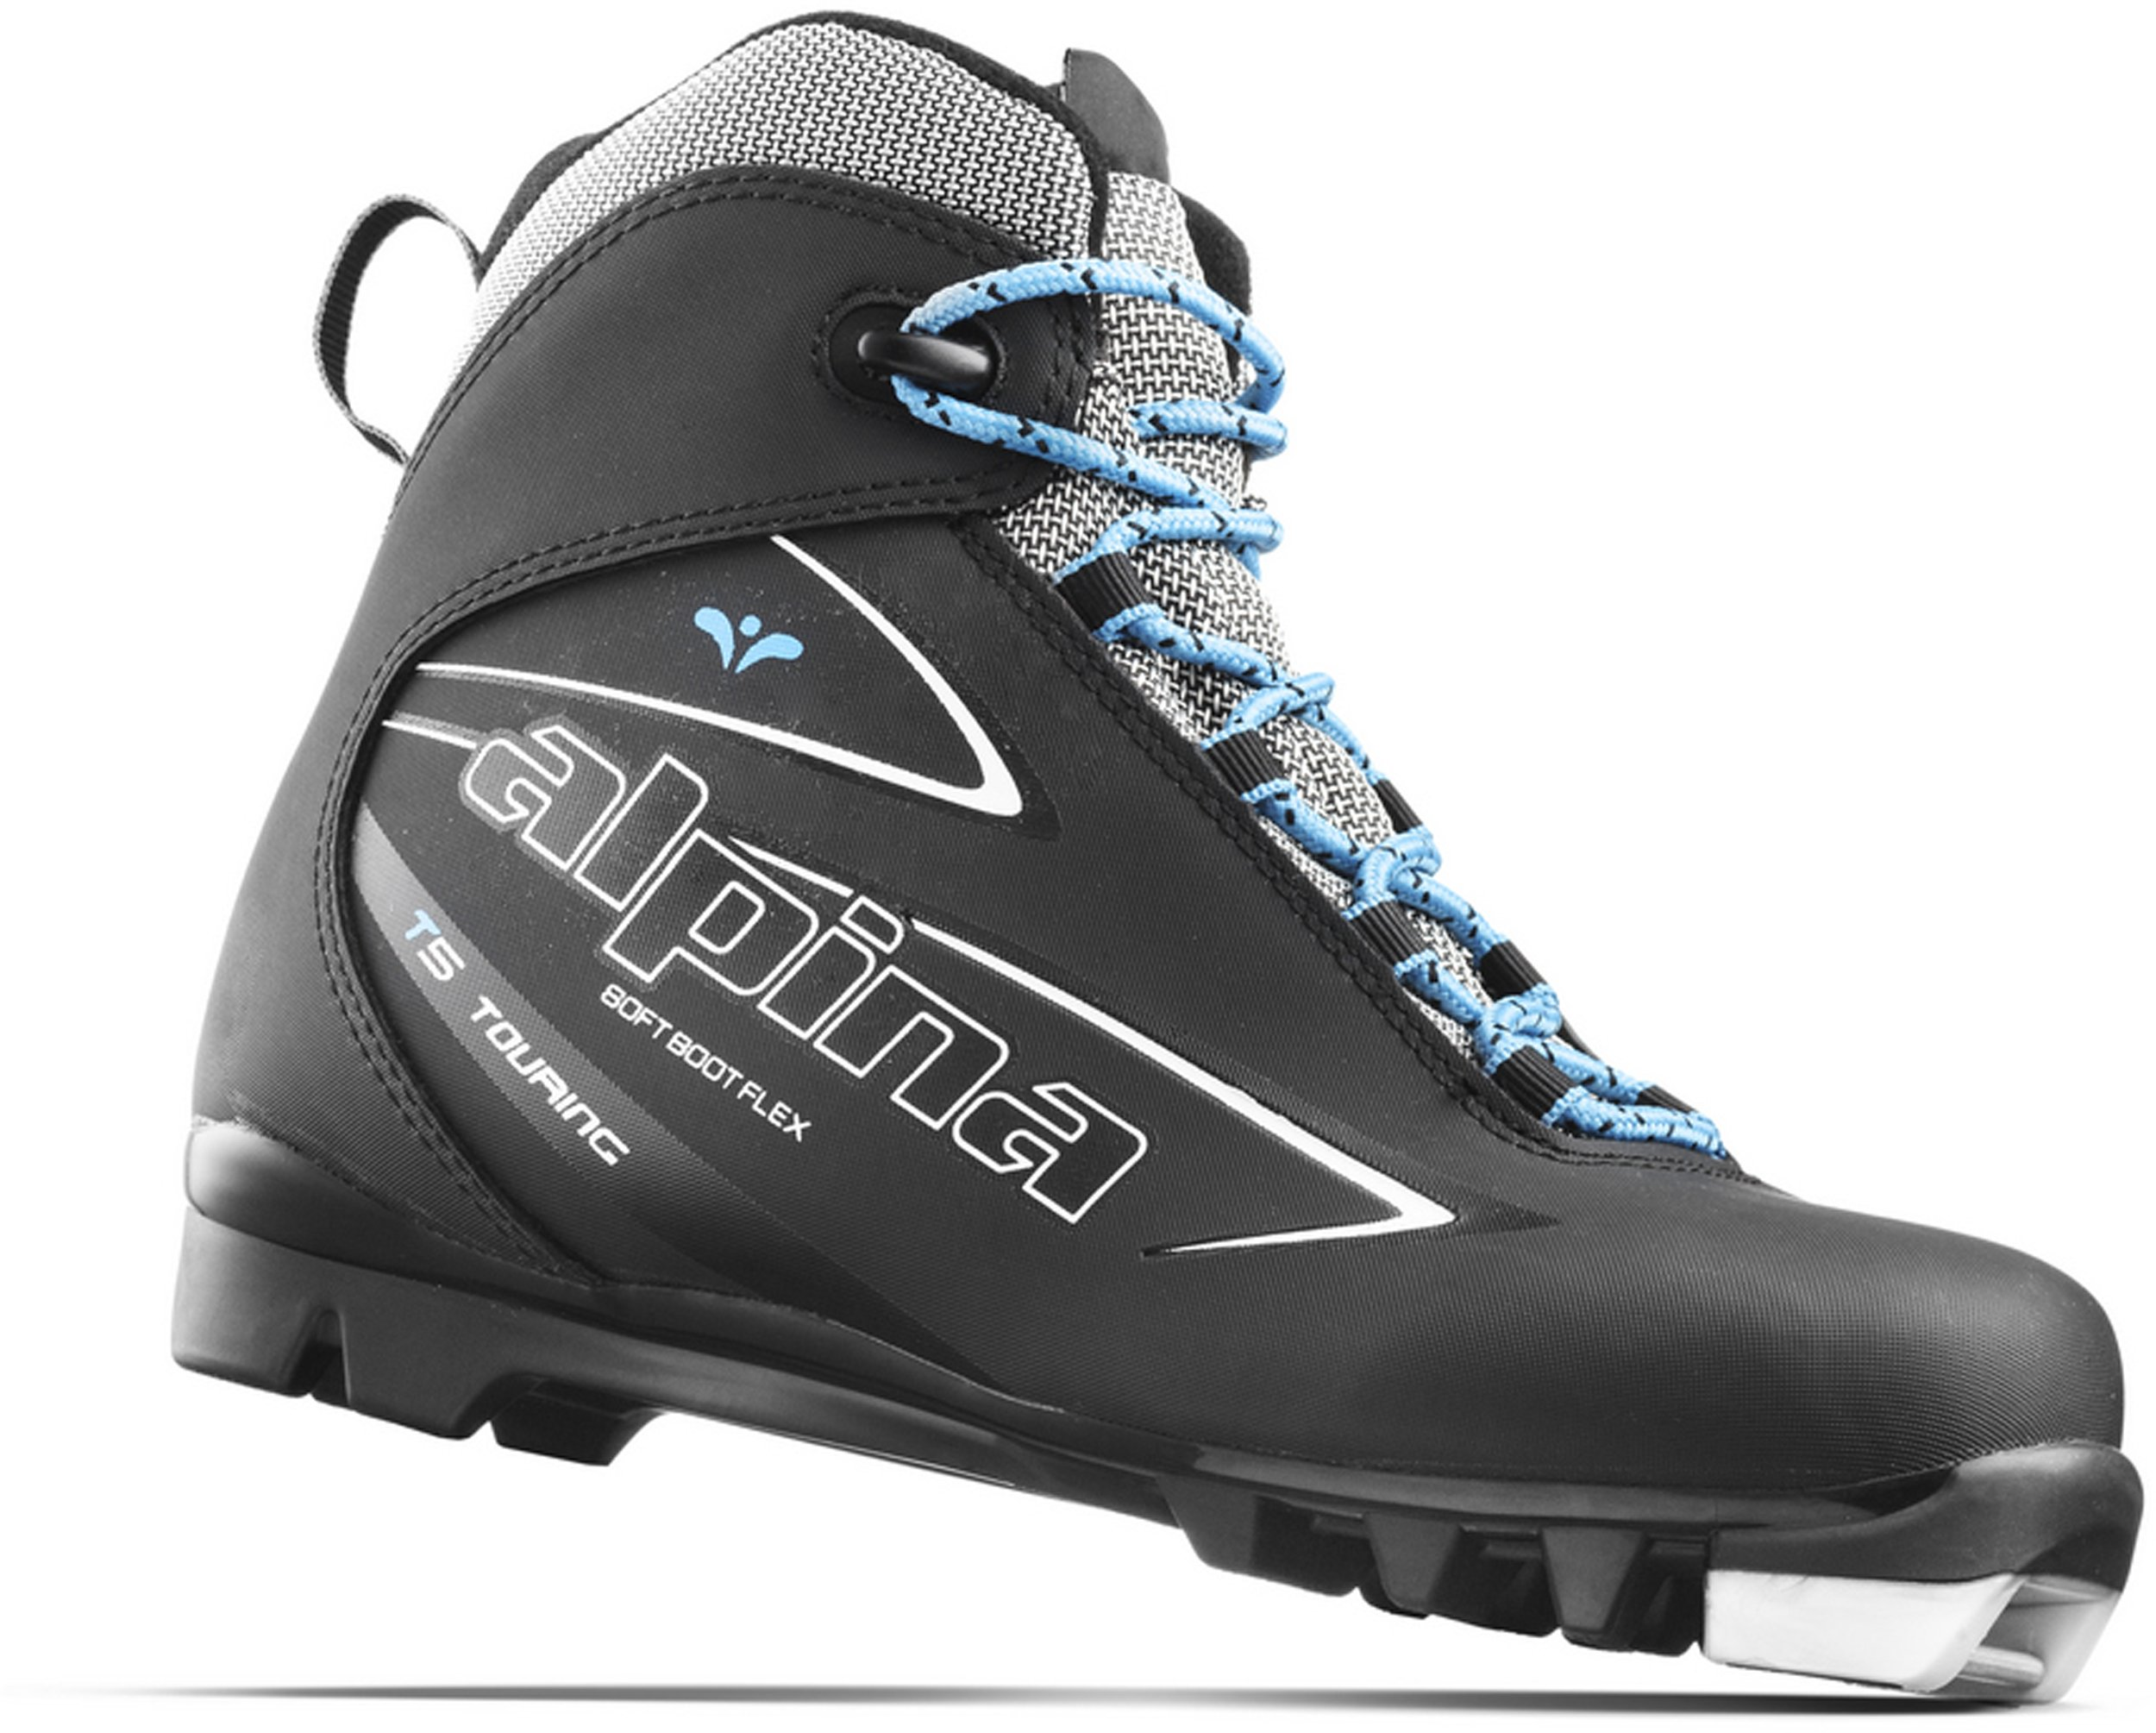 Alpina Sports Women's T5 Eve Touring Cross Country Nordic Ski Boots, Euro 39, Black/White/Blue by Alpina